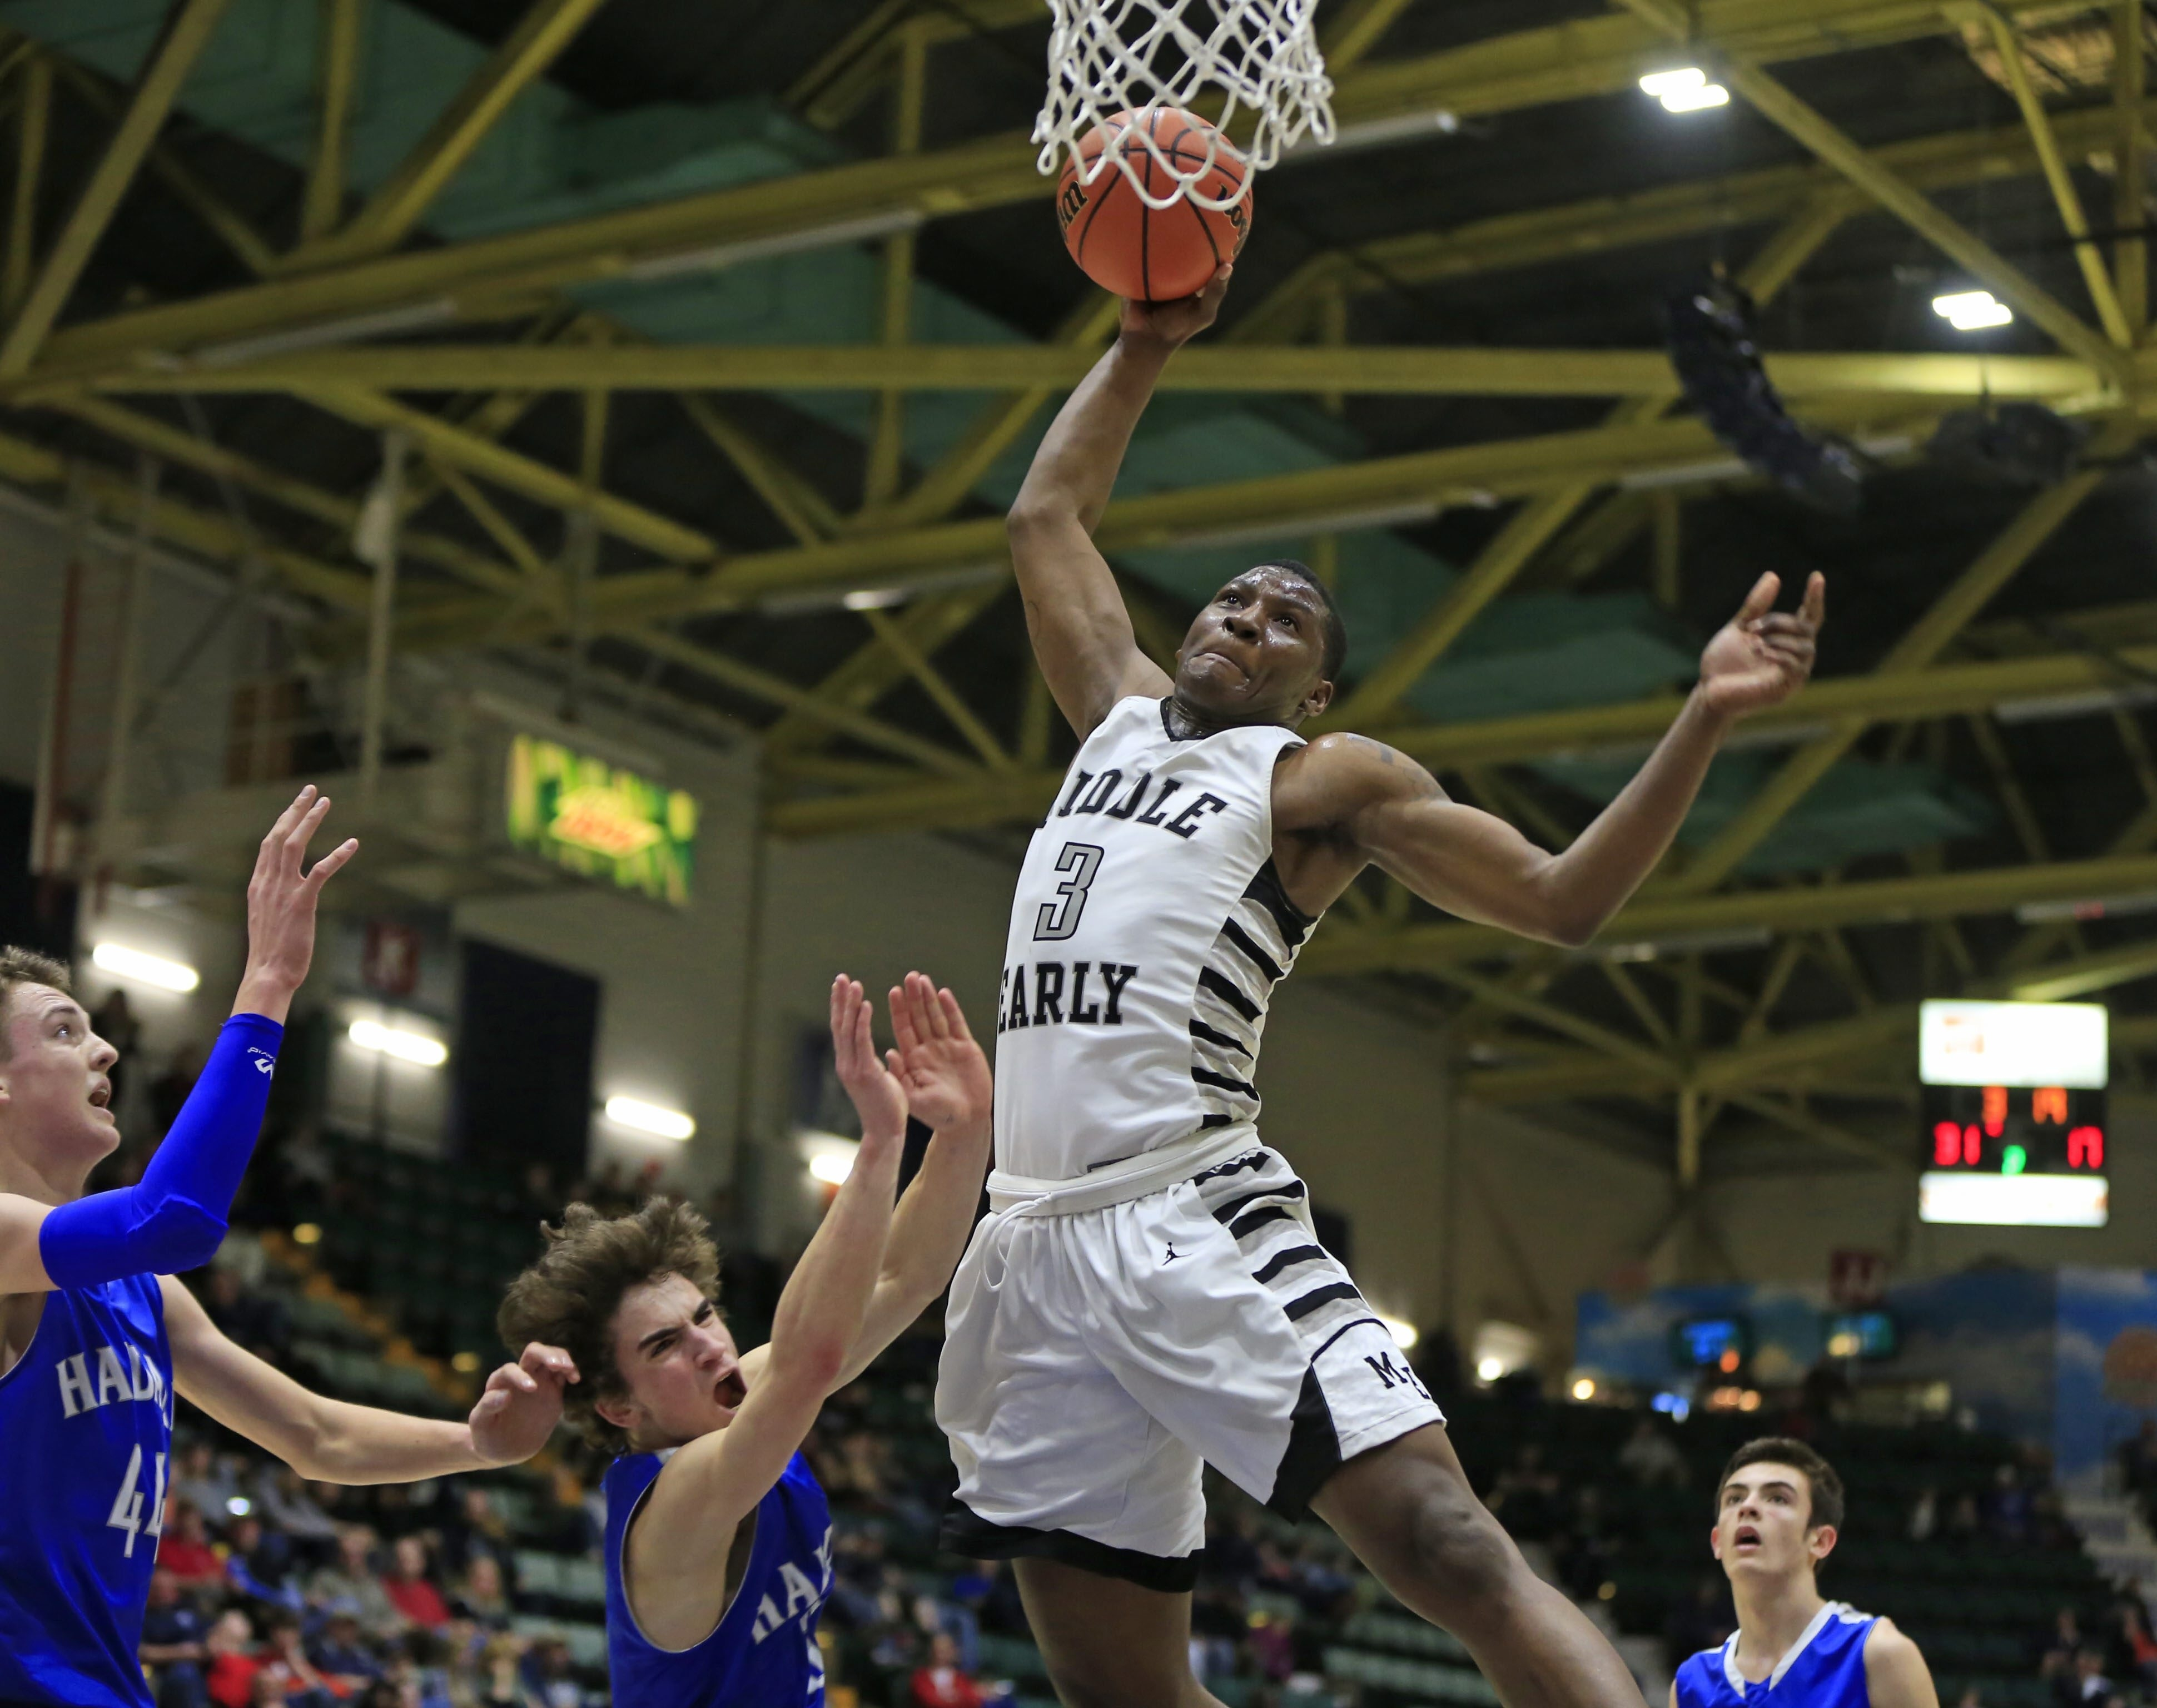 Middle Early College's Gary Foster drives to the basket against Haldane in Saturday's New York State Class C Final in Glens Falls.